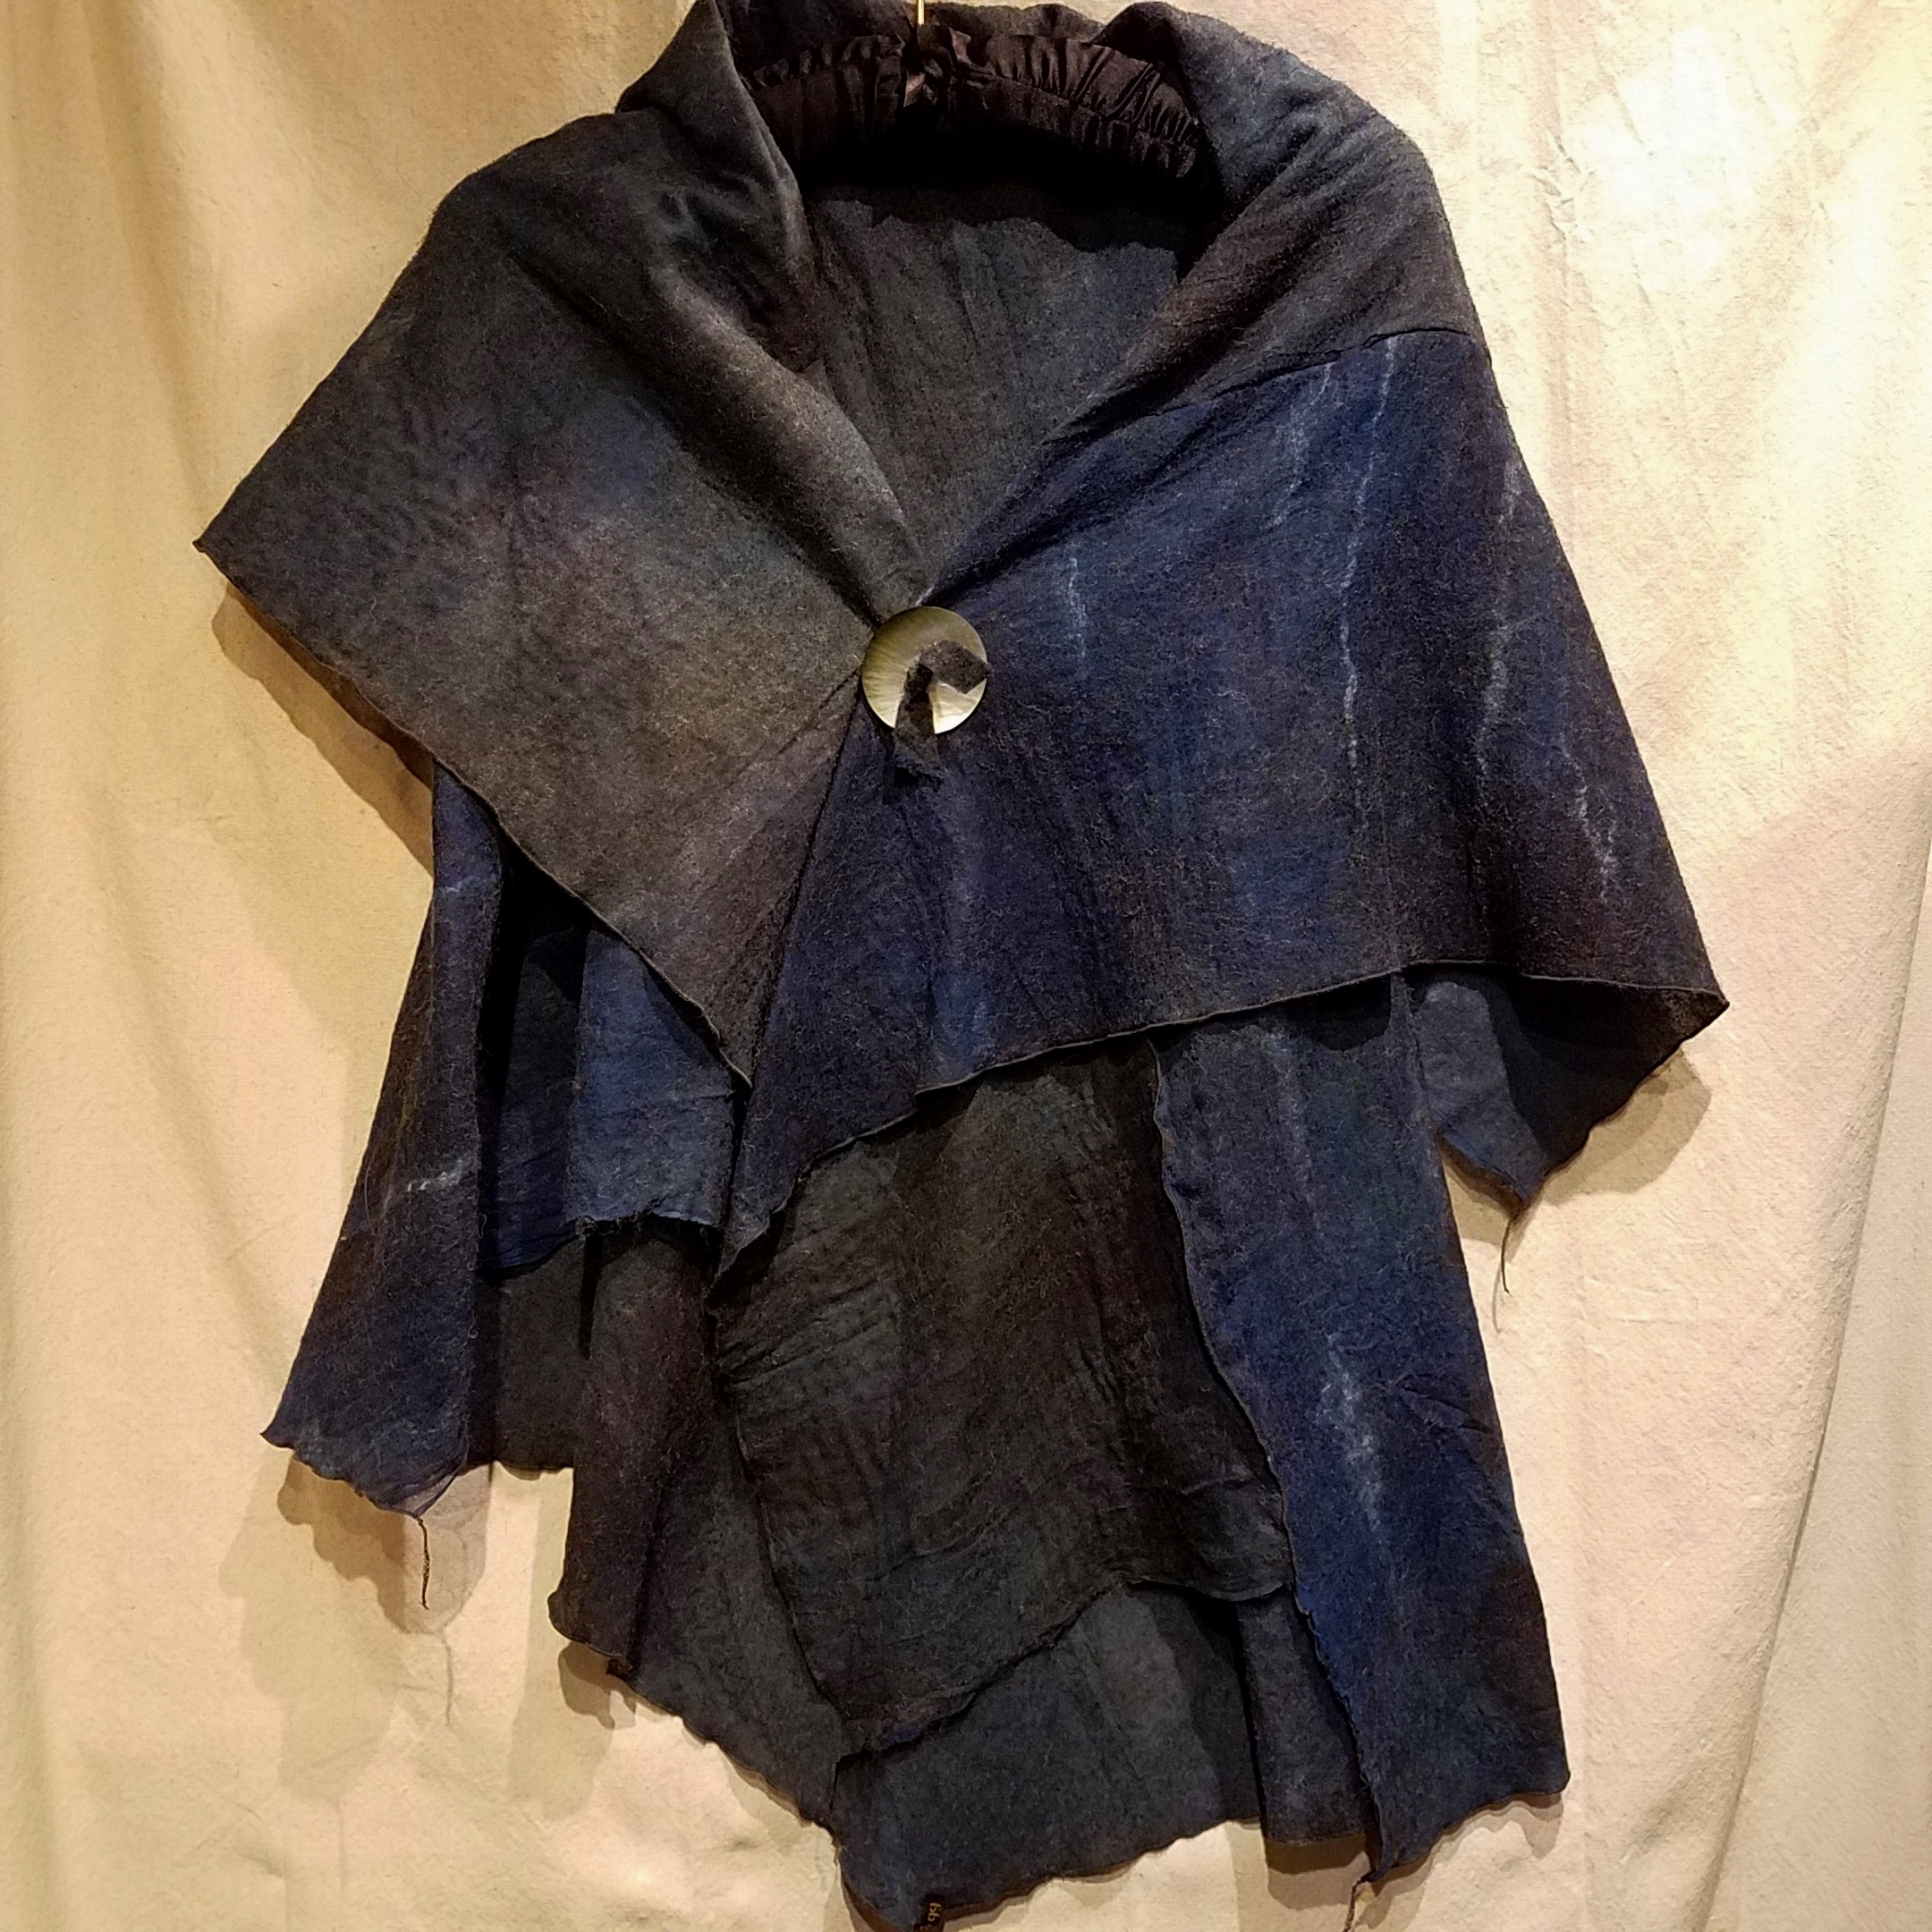 Origami Wrap/Vest BBG1143 Alpaca and Silk $485